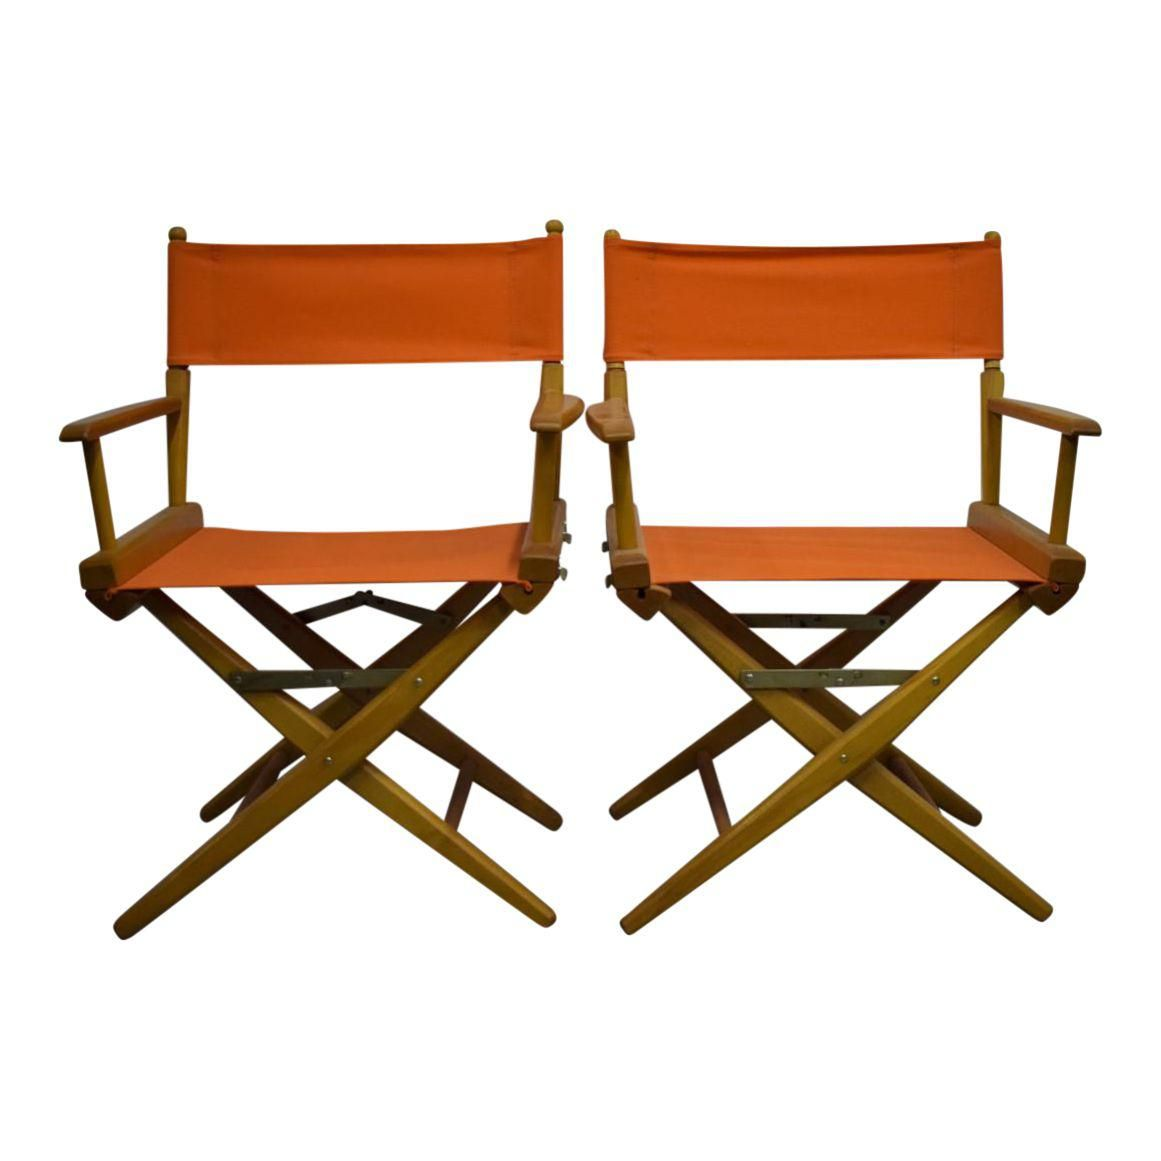 Hermes Orange Canvas Director S Chairs A Pair Lofts # Penguin Lodge Muebles